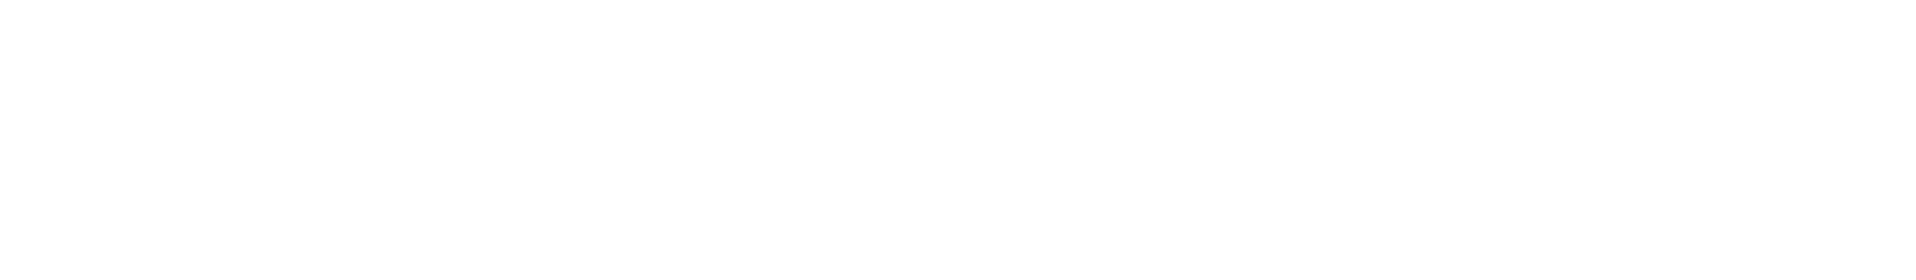 Logo of Arctic-Subarctic Ocean Fluxes